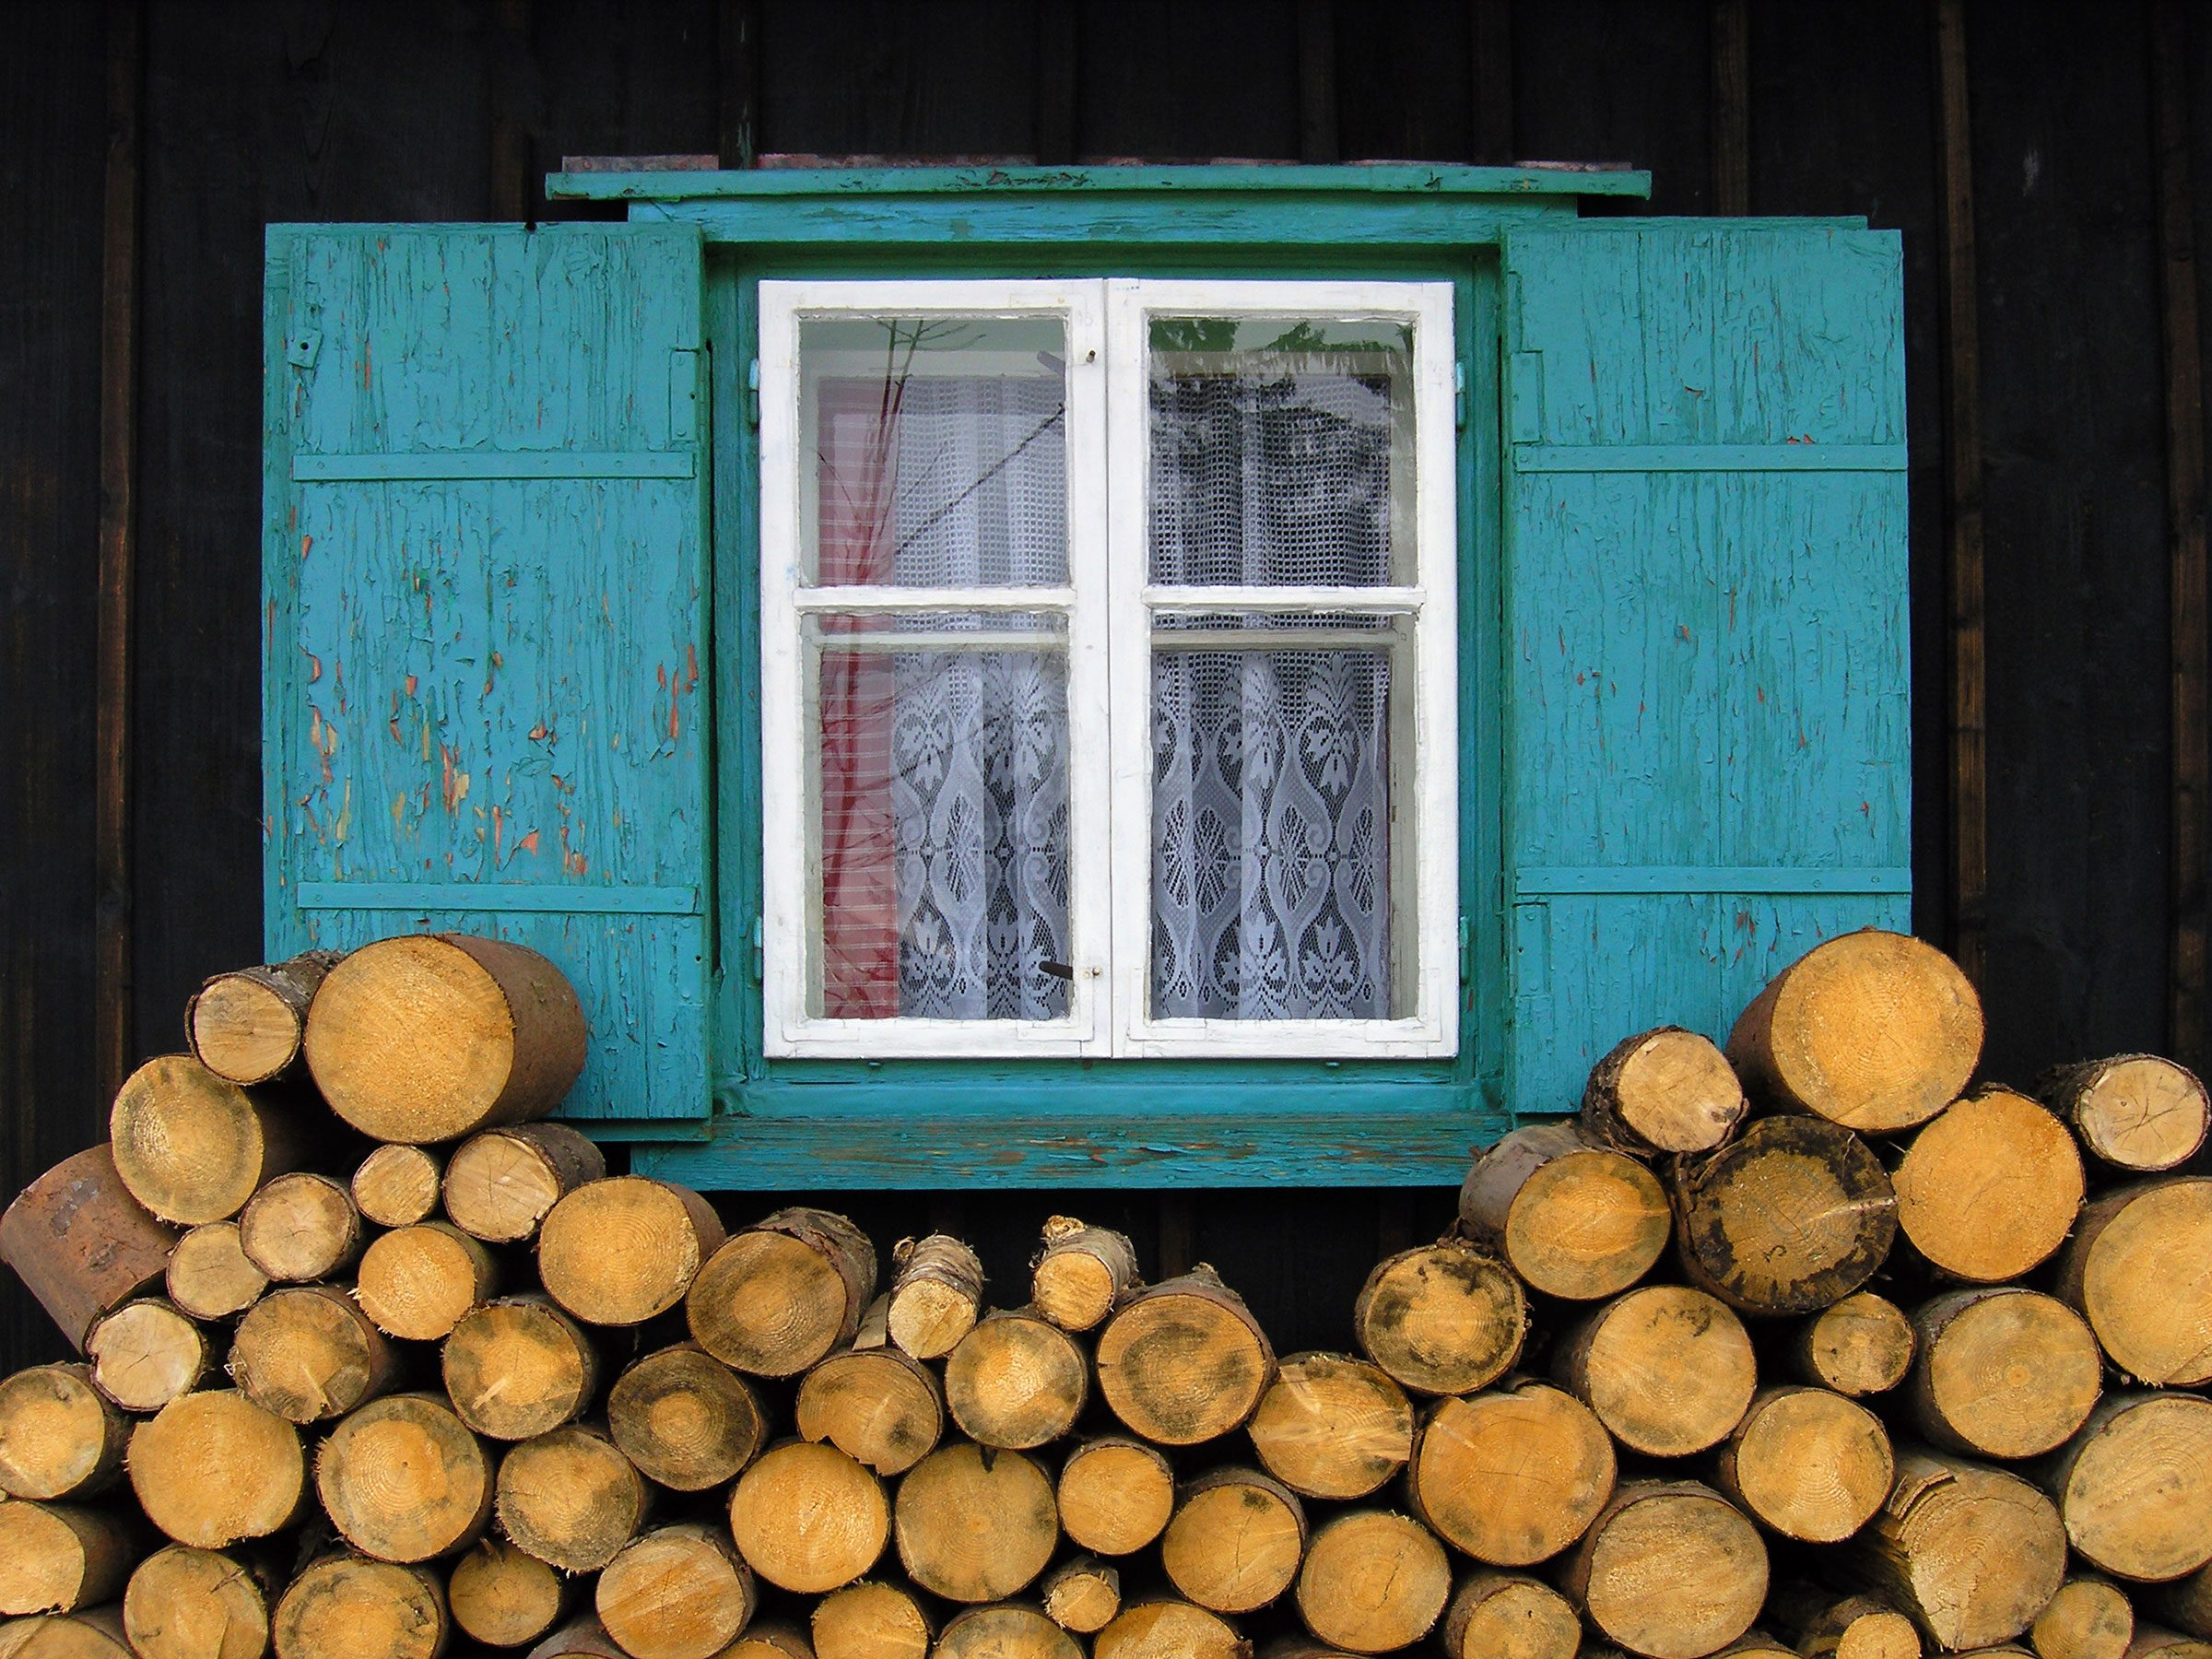 9. Don't store wood near the side of the house, as it can easily be used by intruders as a stepladder up to a window.